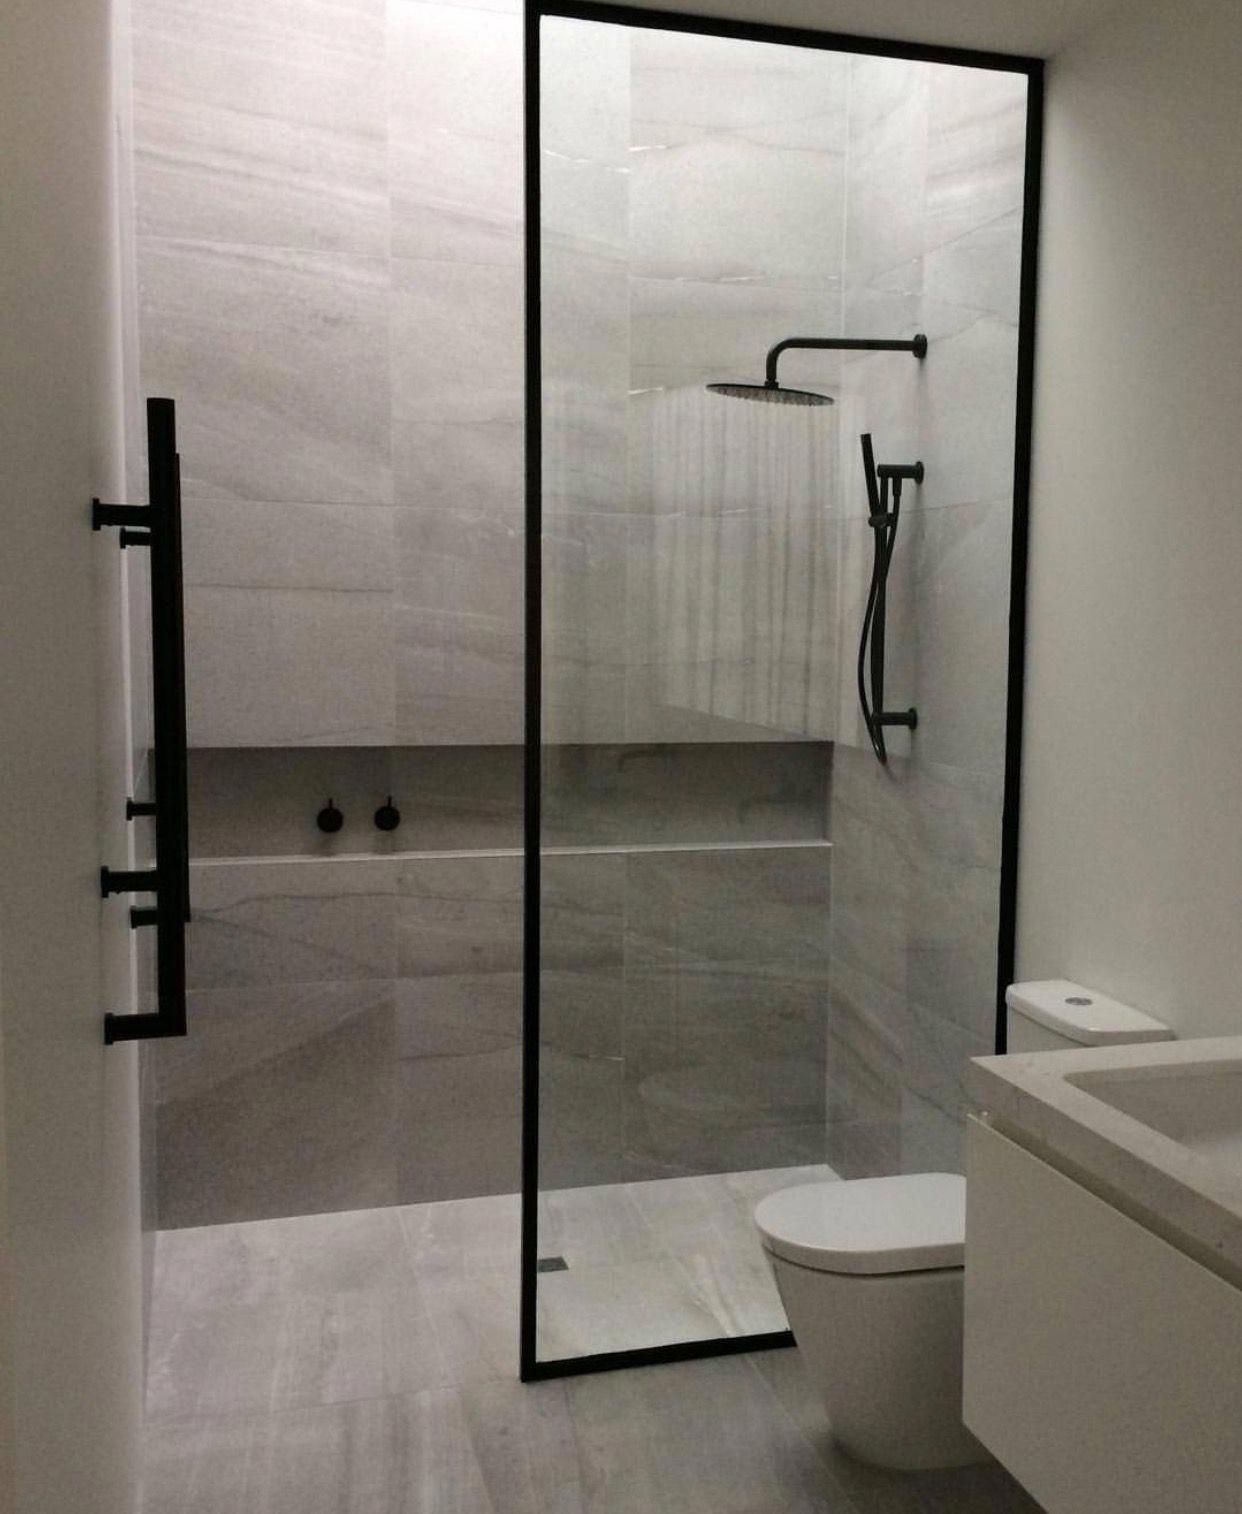 Frameless Glass Shower Doors Have Actually Risen In Popularity In Current Years As House Owners Develop A Tas Amazing Bathrooms Bathroom Design Modern Bathroom